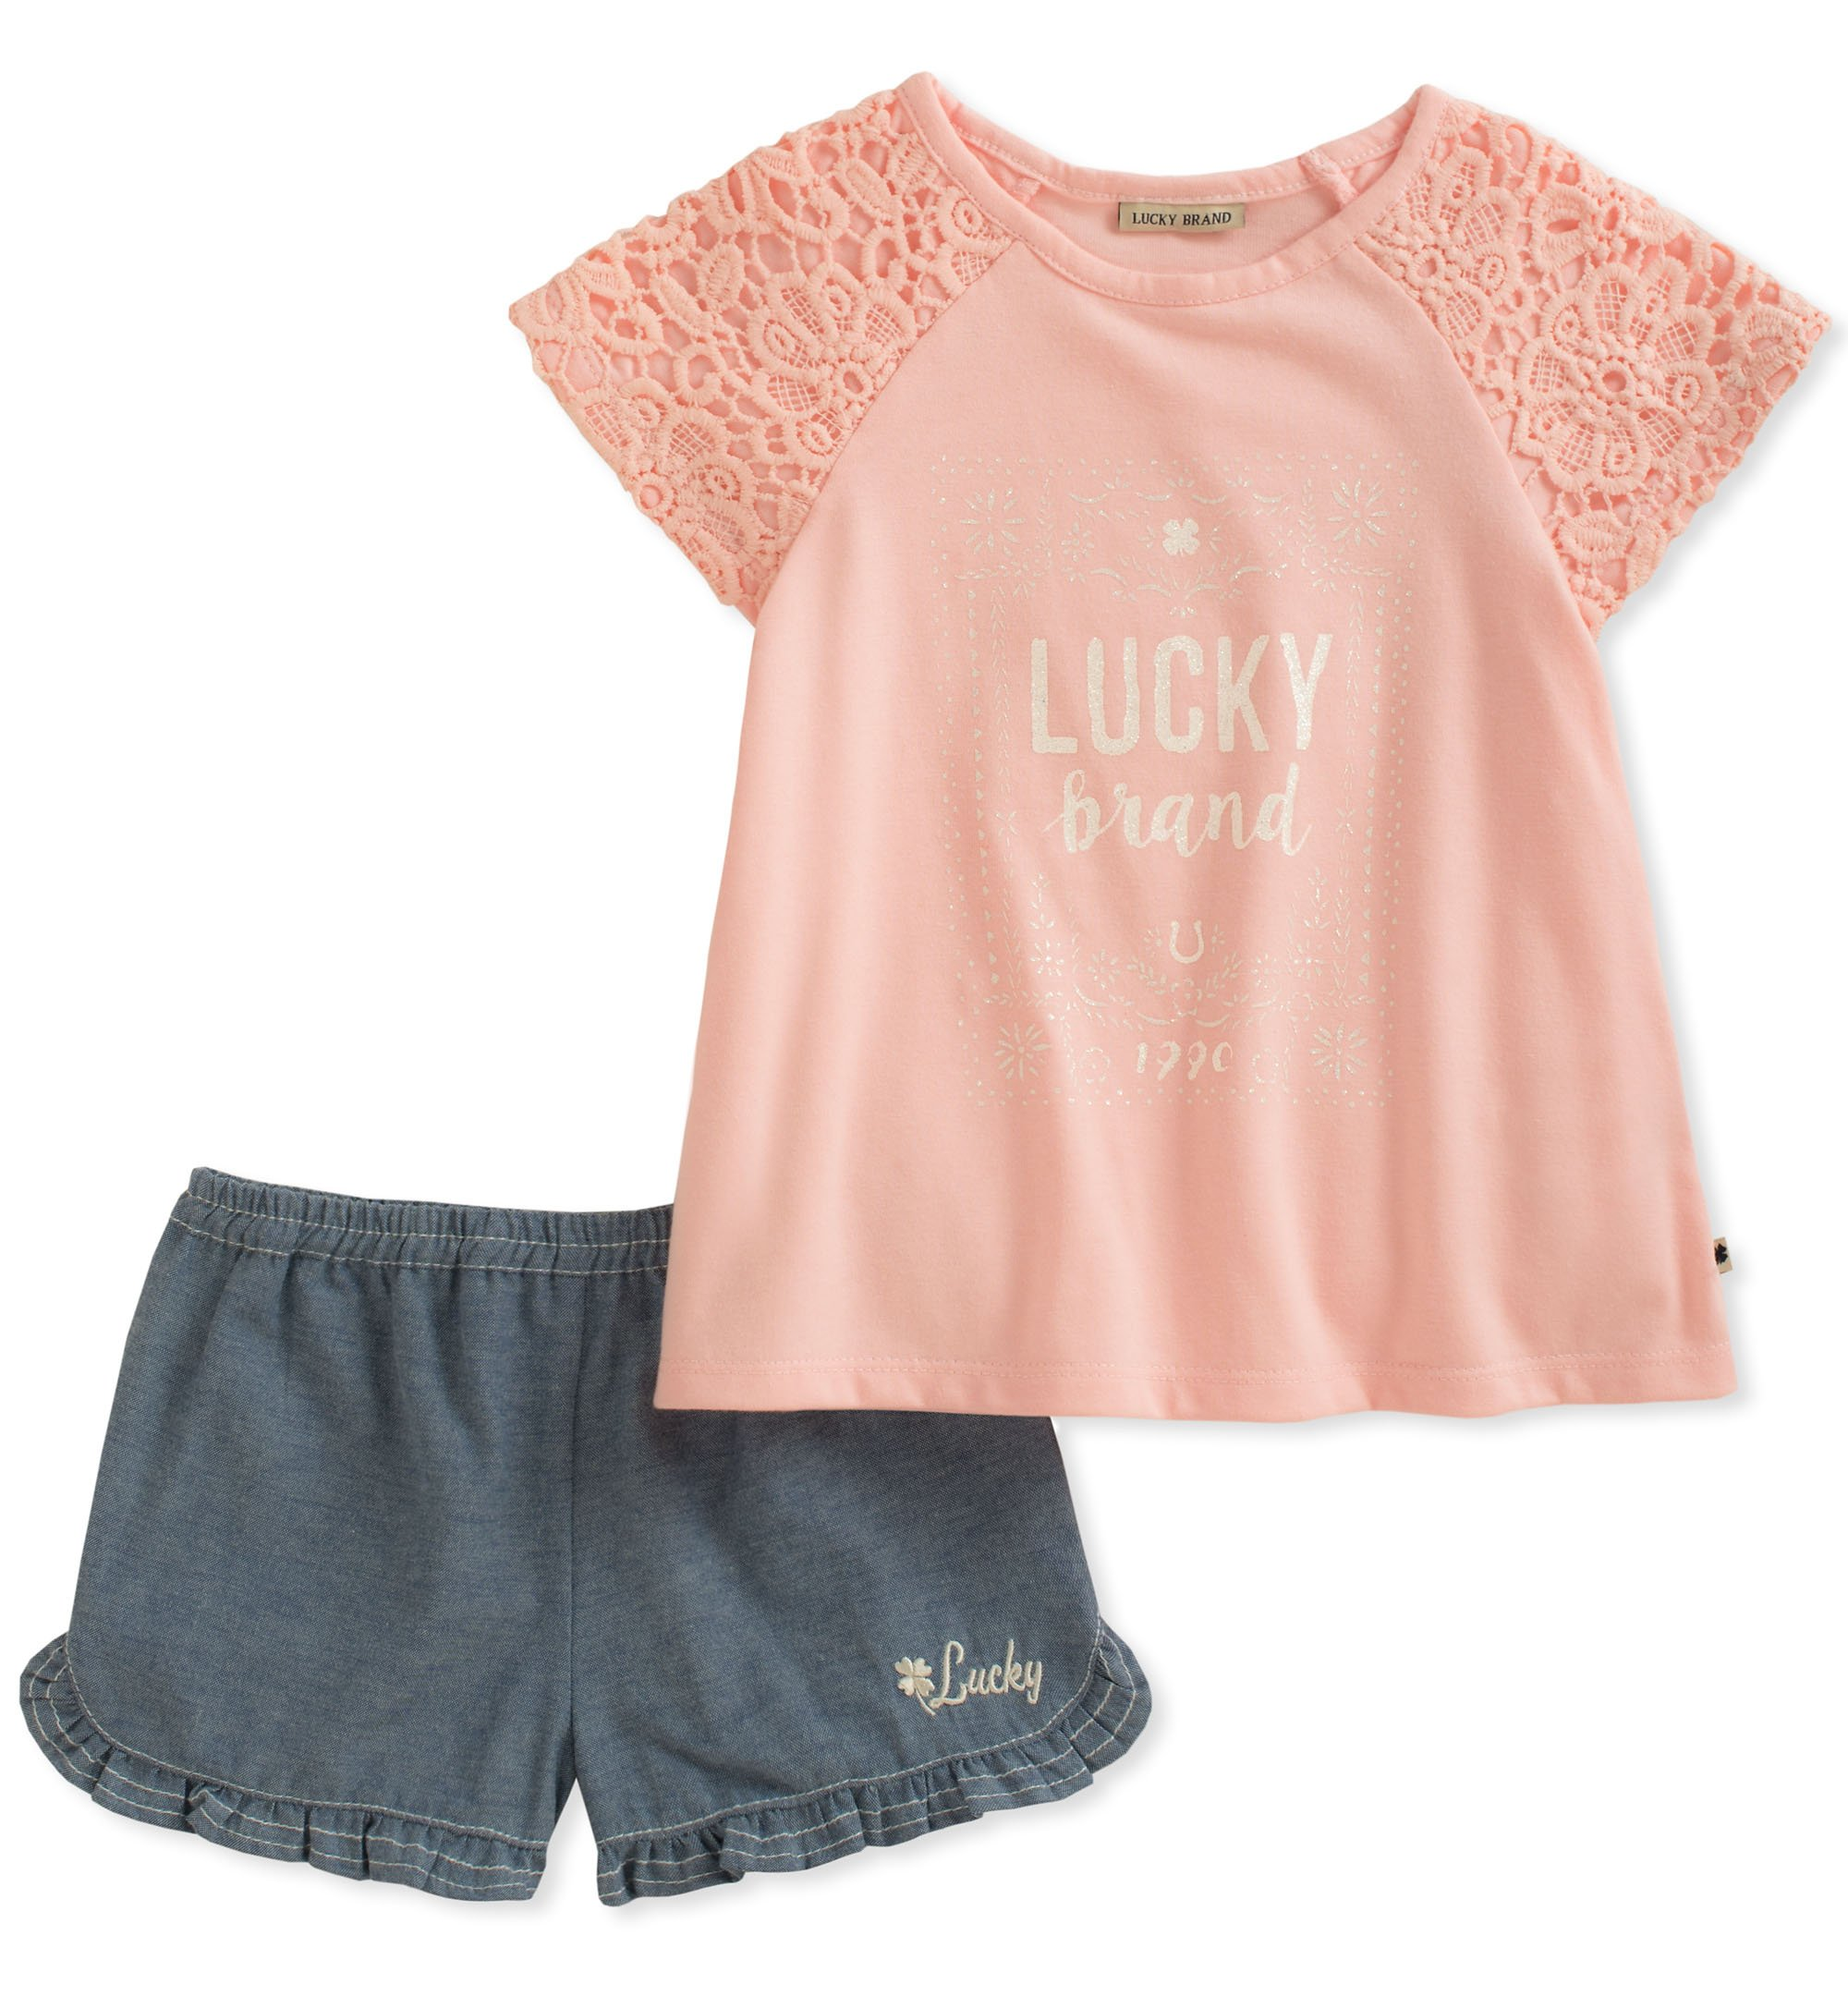 Lucky Brand Toddler Girls' Denim Shorts Set, Pink, 3T